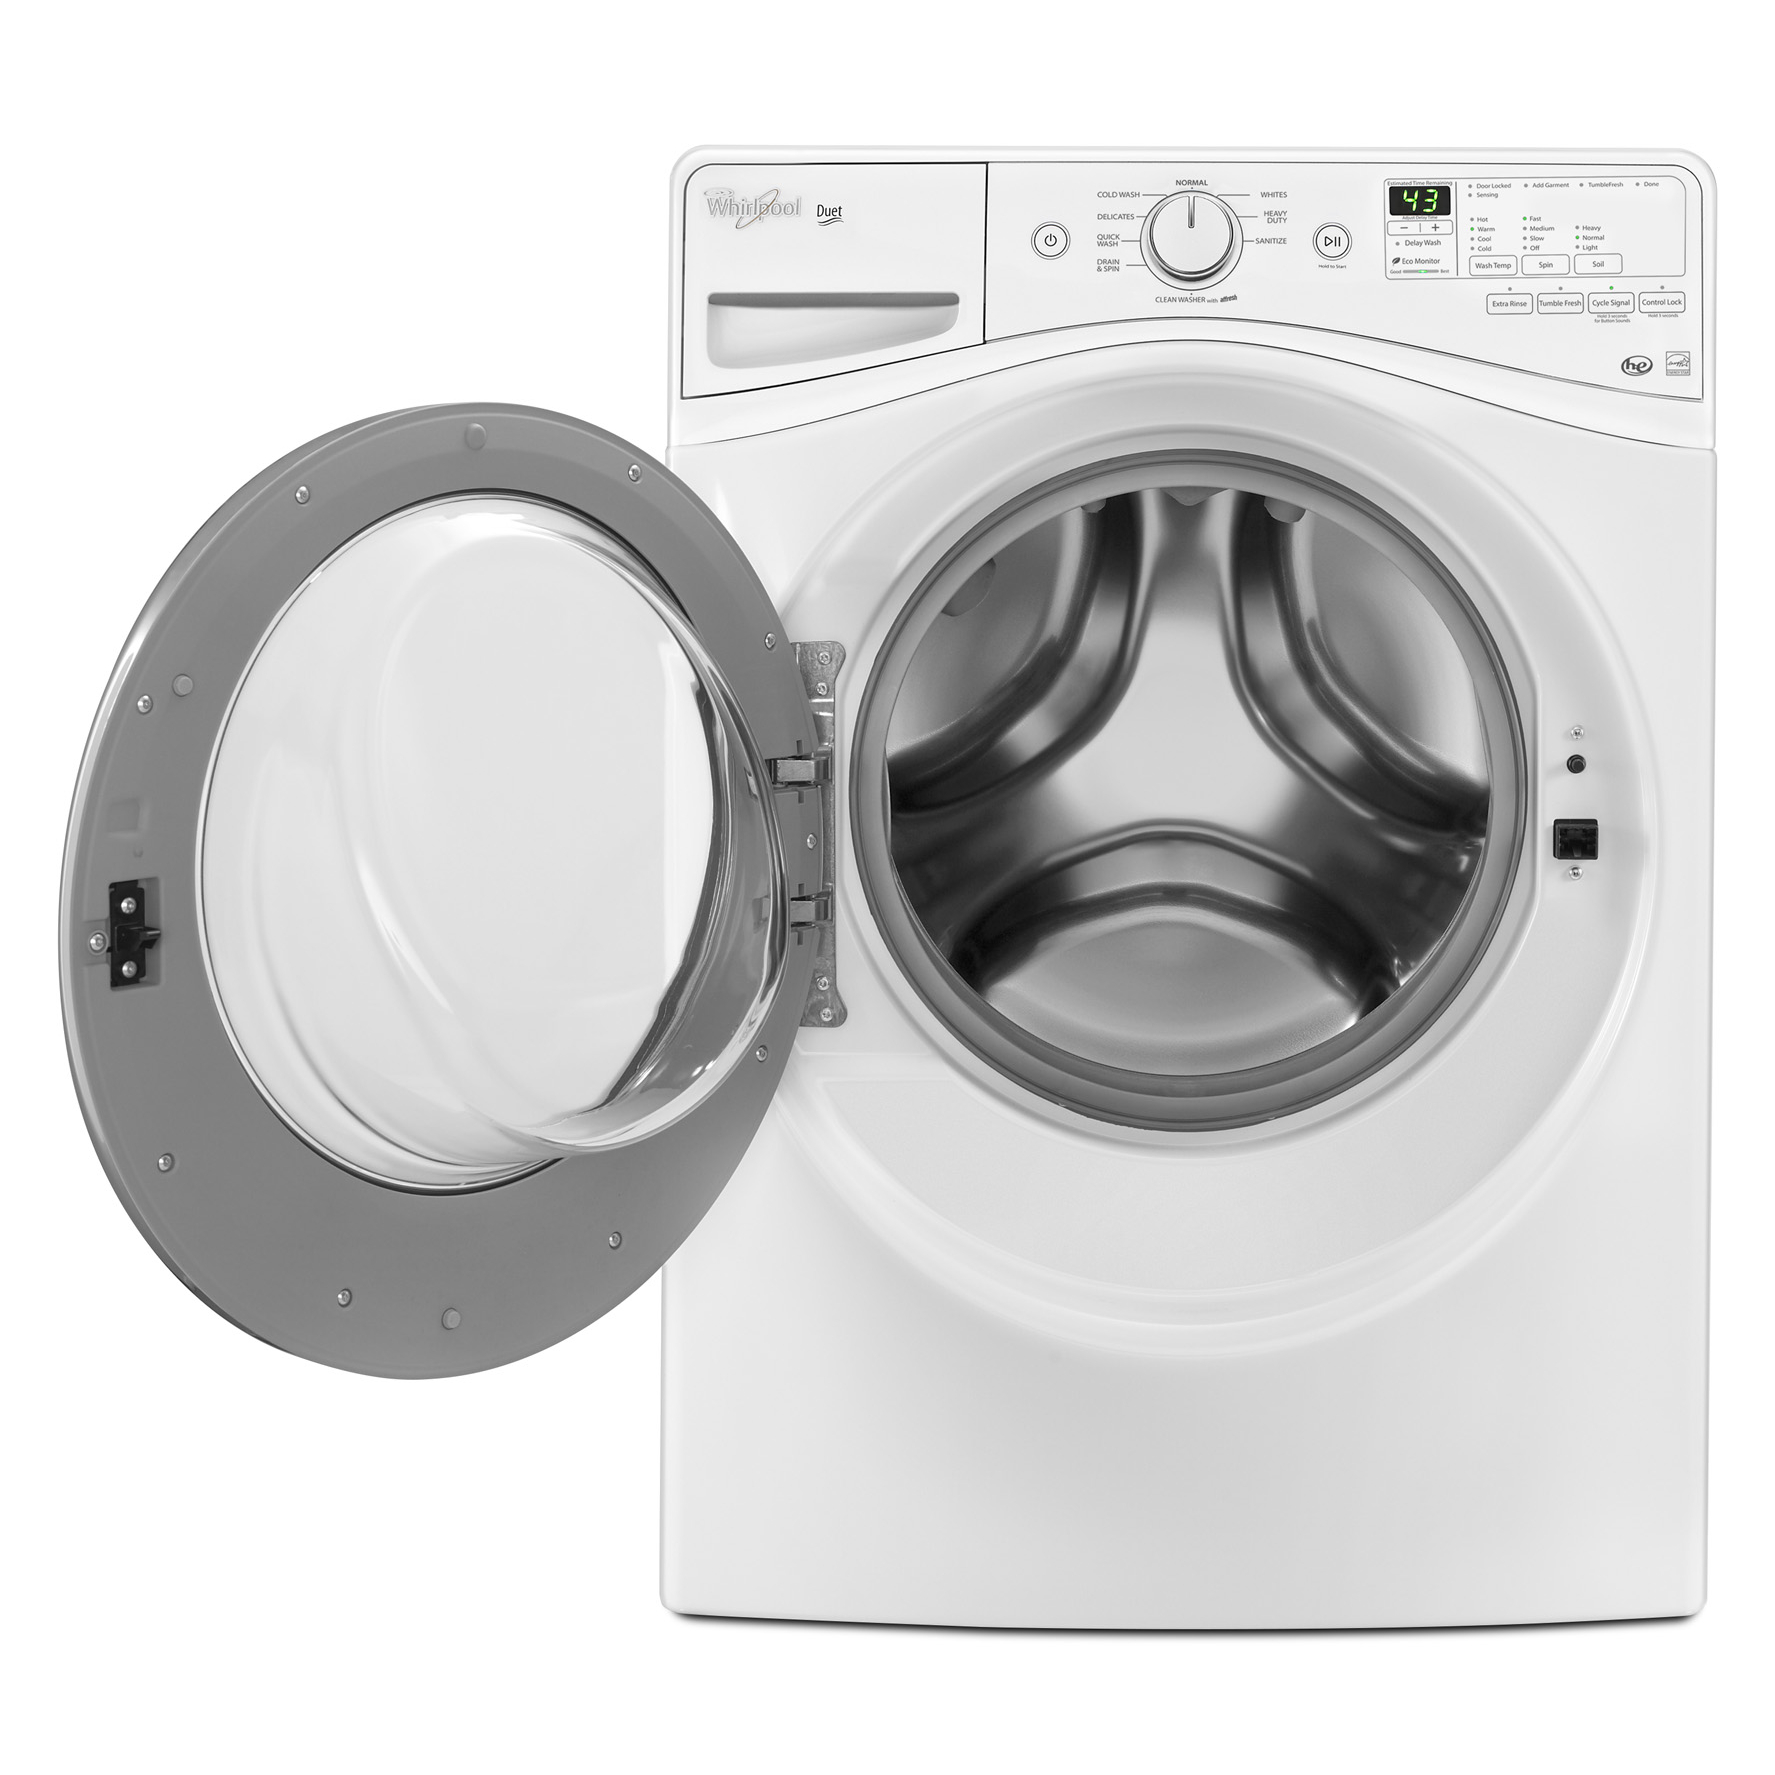 Whirlpool WFW81HEDW 4.2 cu. ft. Duet® Front-Load Washer w/ TumbleFresh™ Option - White